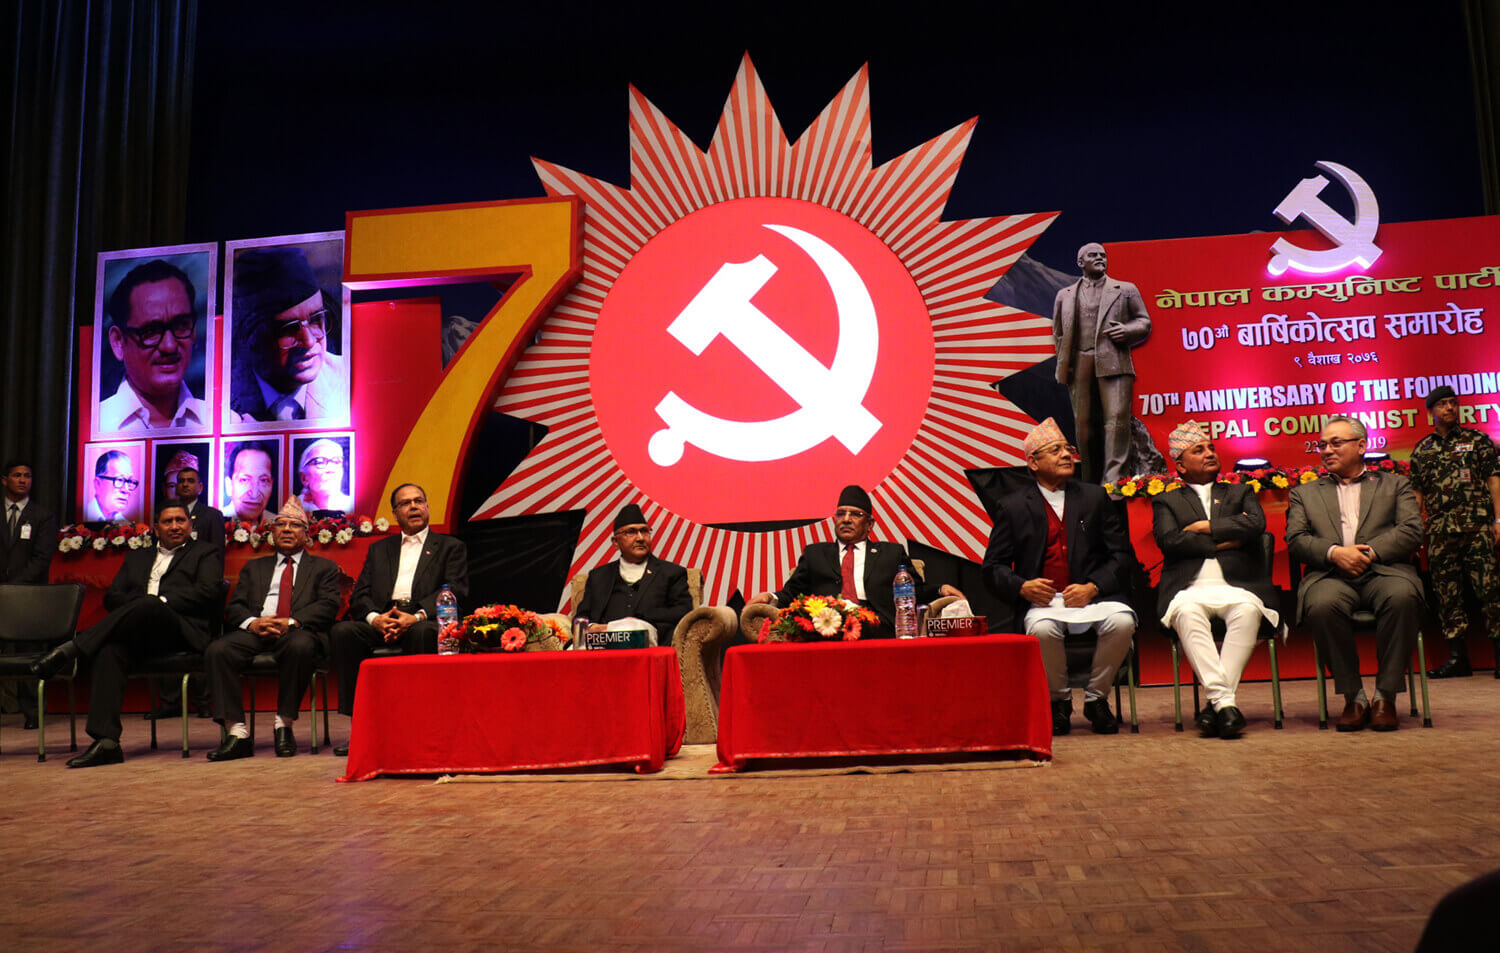 Anniversary of Nepal Communist Party